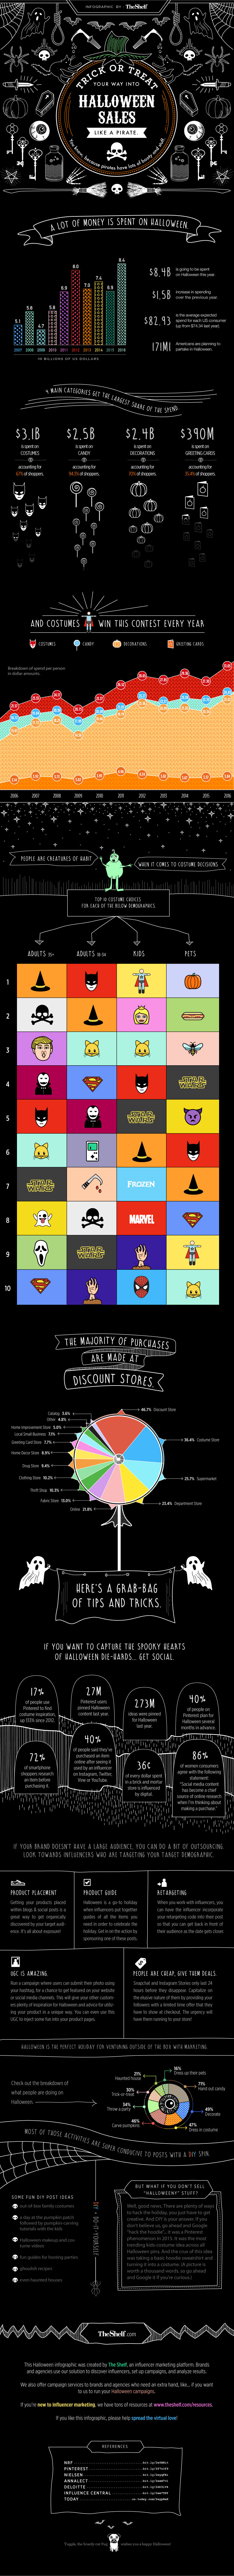 halloween-infographic-the-shelf